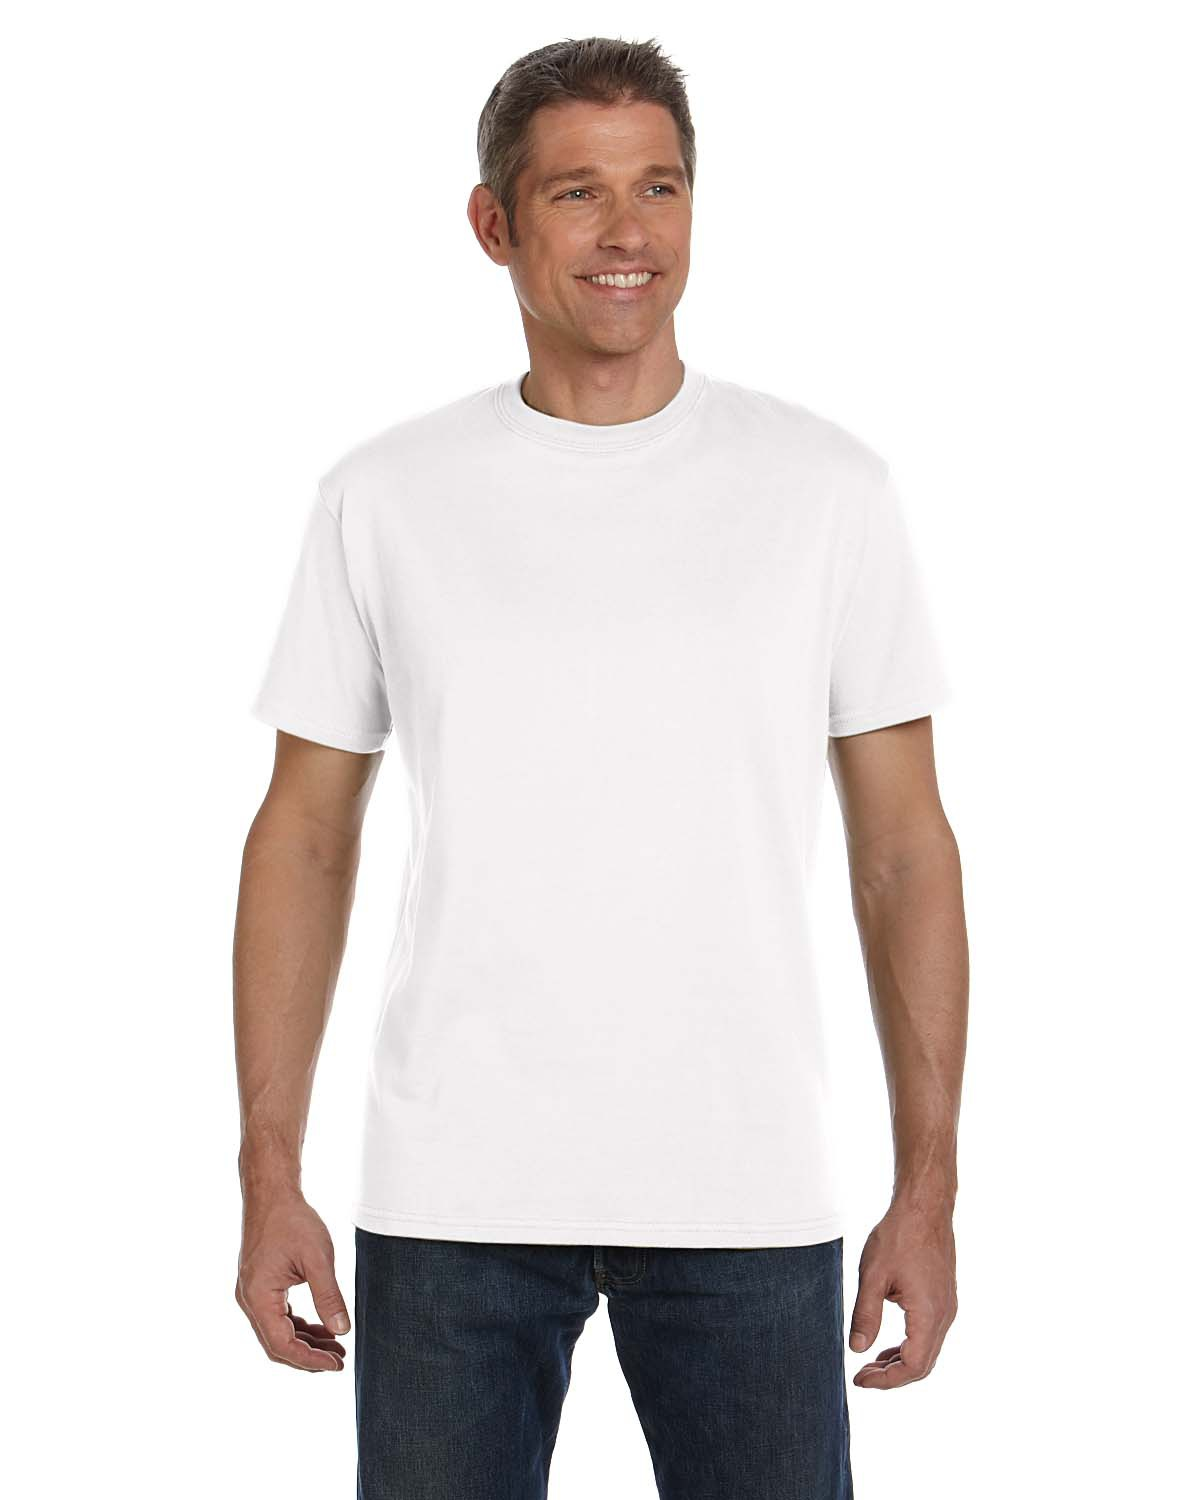 Men S Casual Inspiration 4: Certified Organic Cotton Men's Classic Short Sleeve T